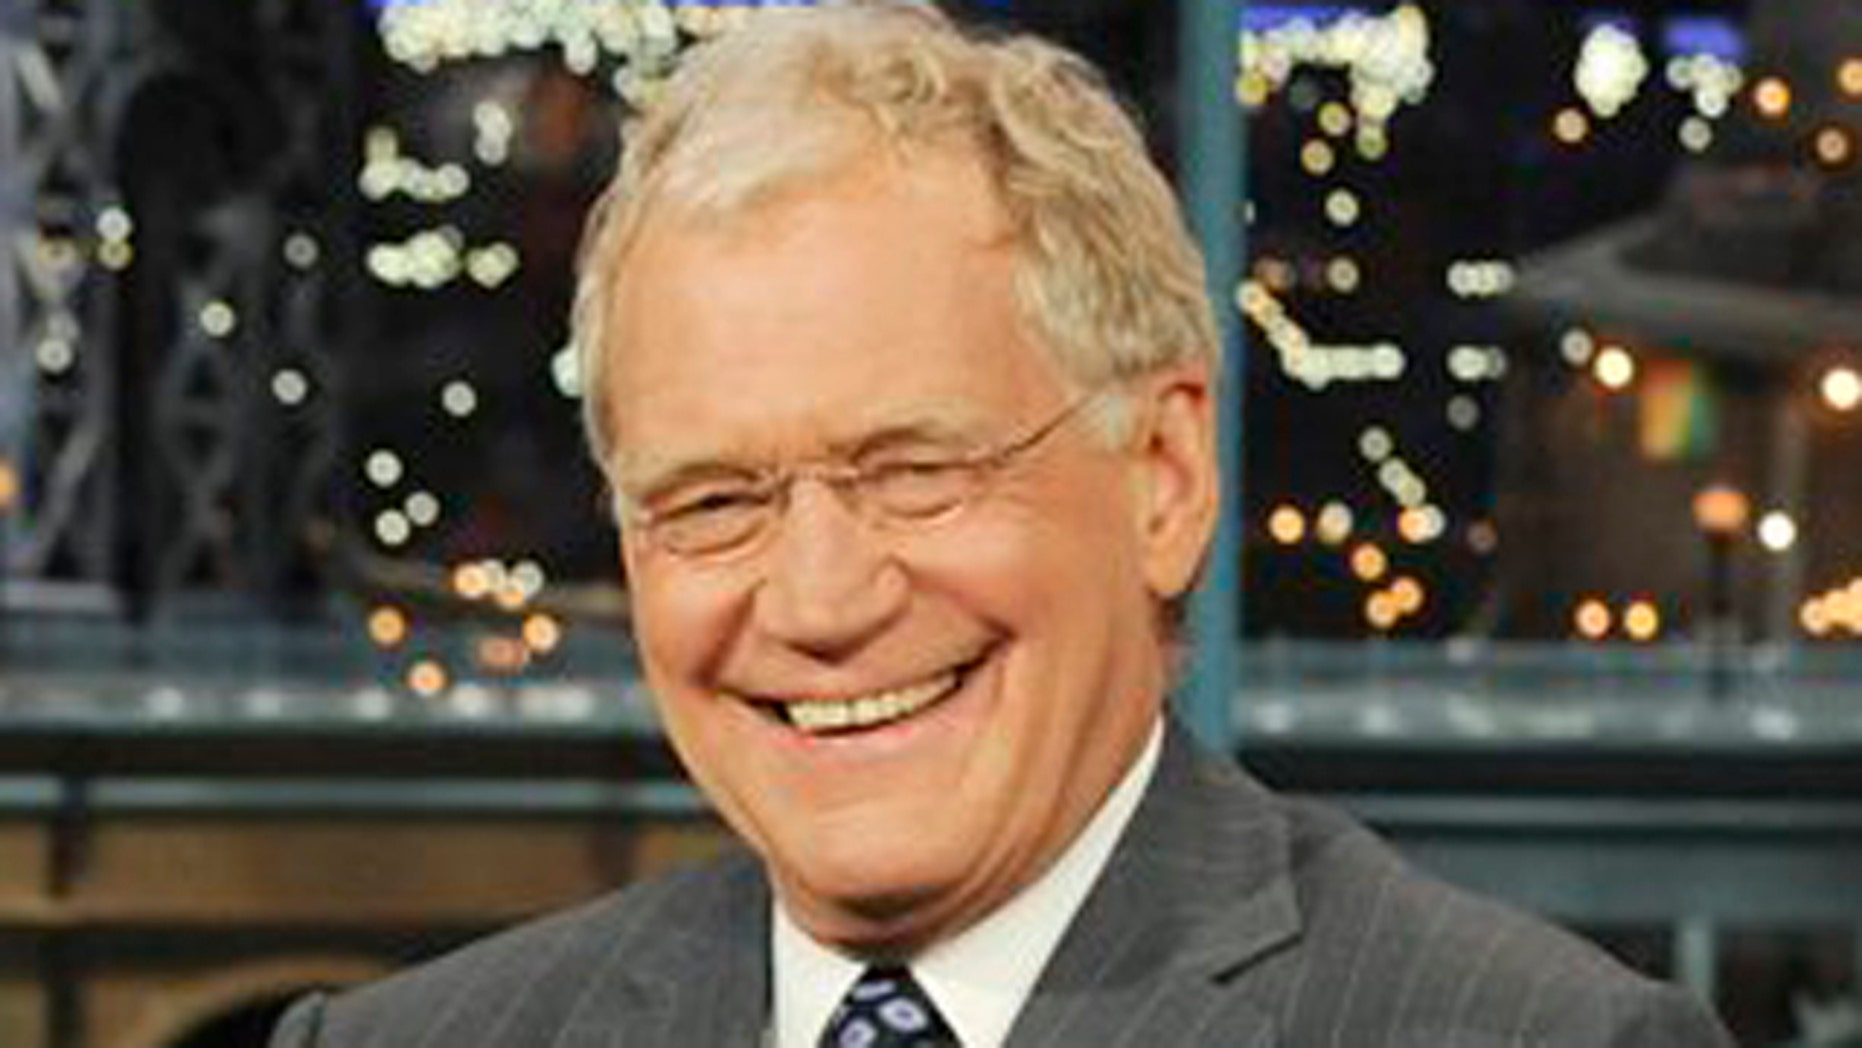 """In this April 21, 2010 file photo released by CBS, host David Letterman is shown on the set of the """"Late Show with David Letterman,"""" in New York."""